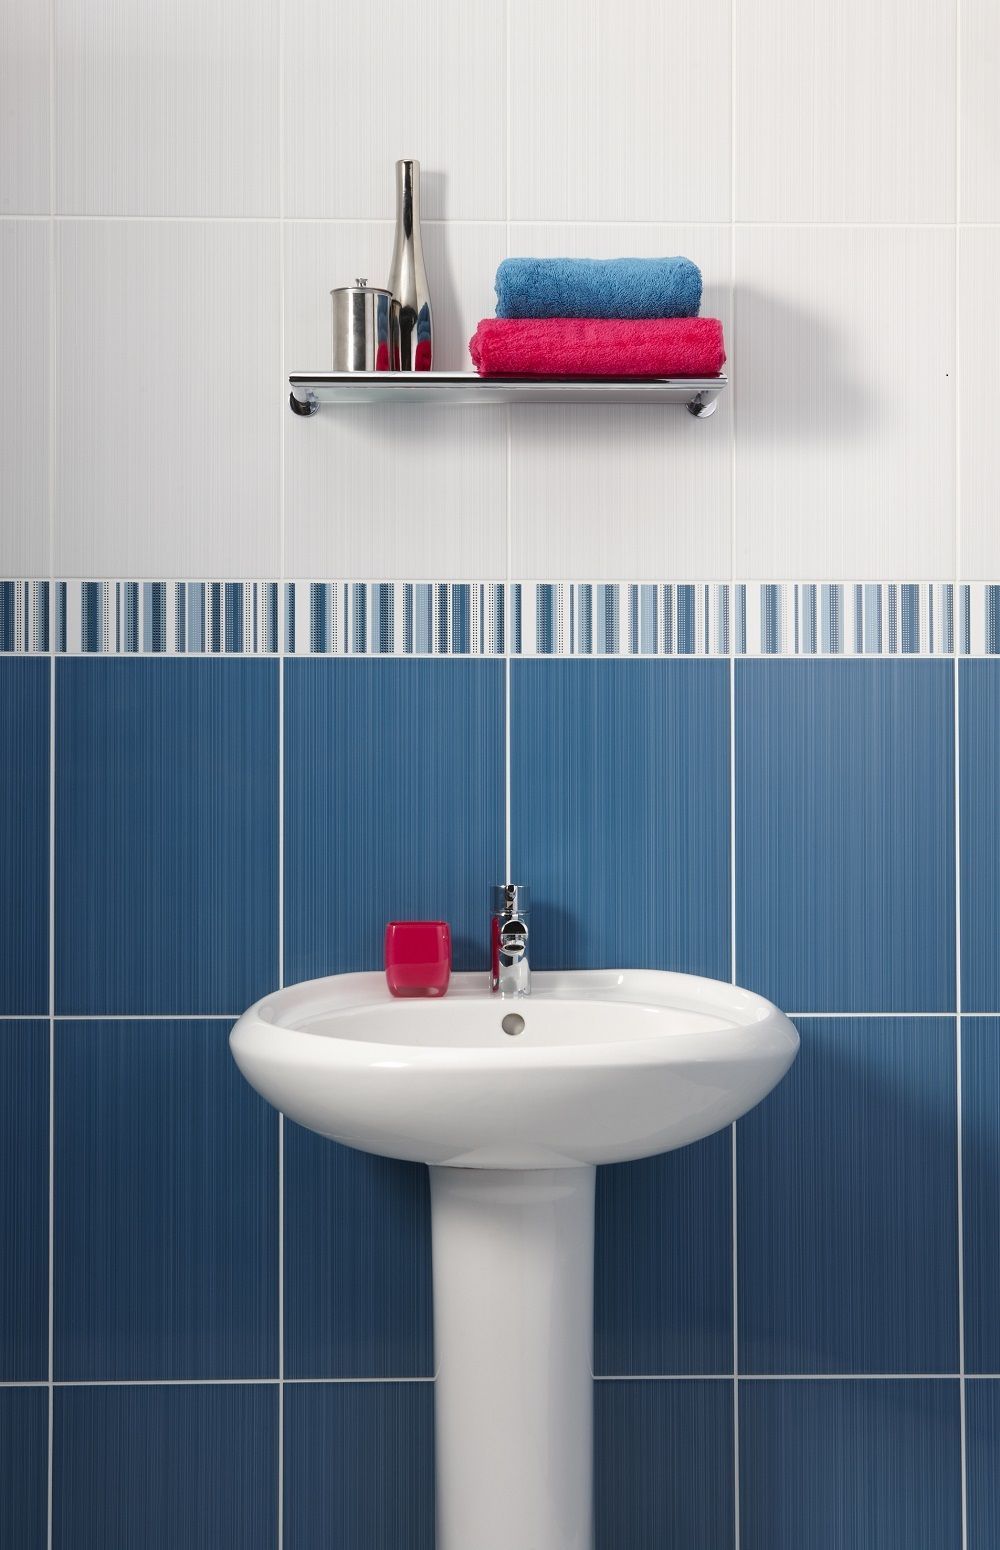 Brighton Blue 24.8x39.8cm gloss wall tile by British Ceramic Tiles ...